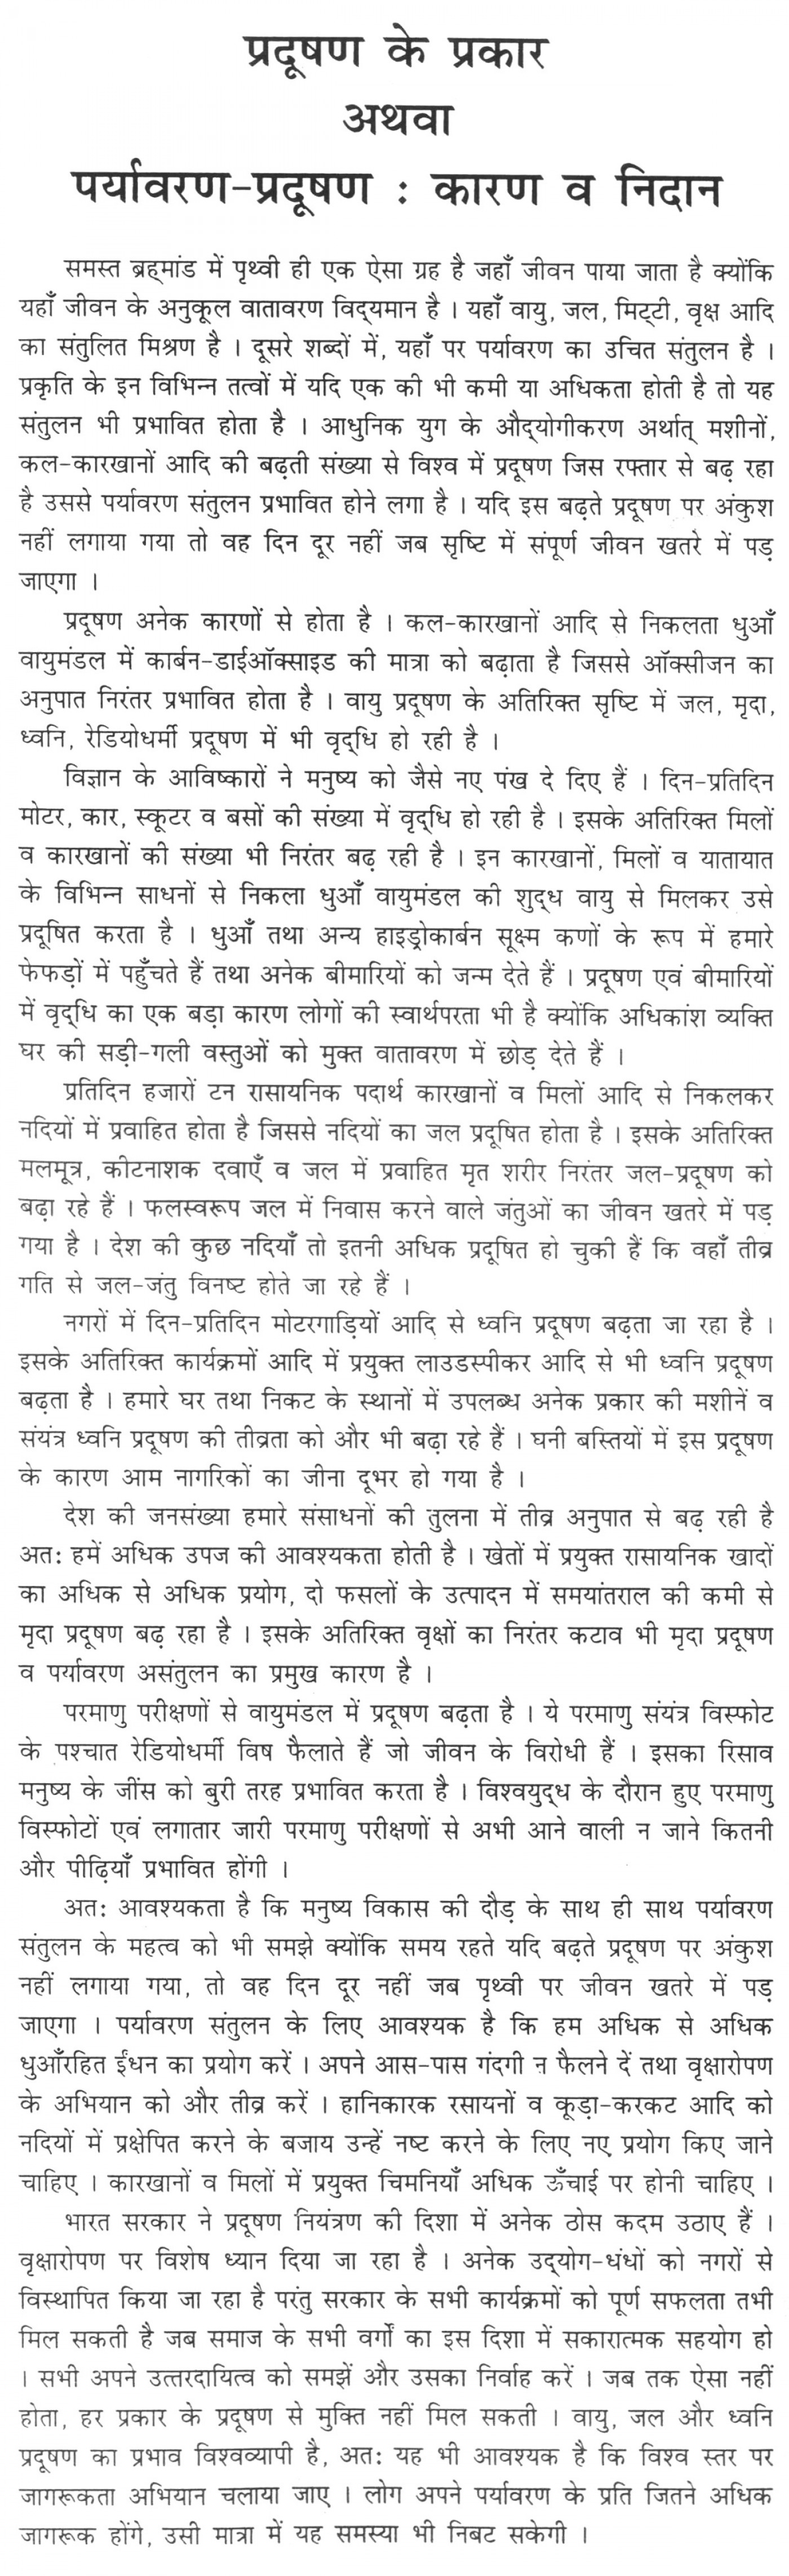 014 Good Habits Essay In Hindi Exceptional Food Habit 1400